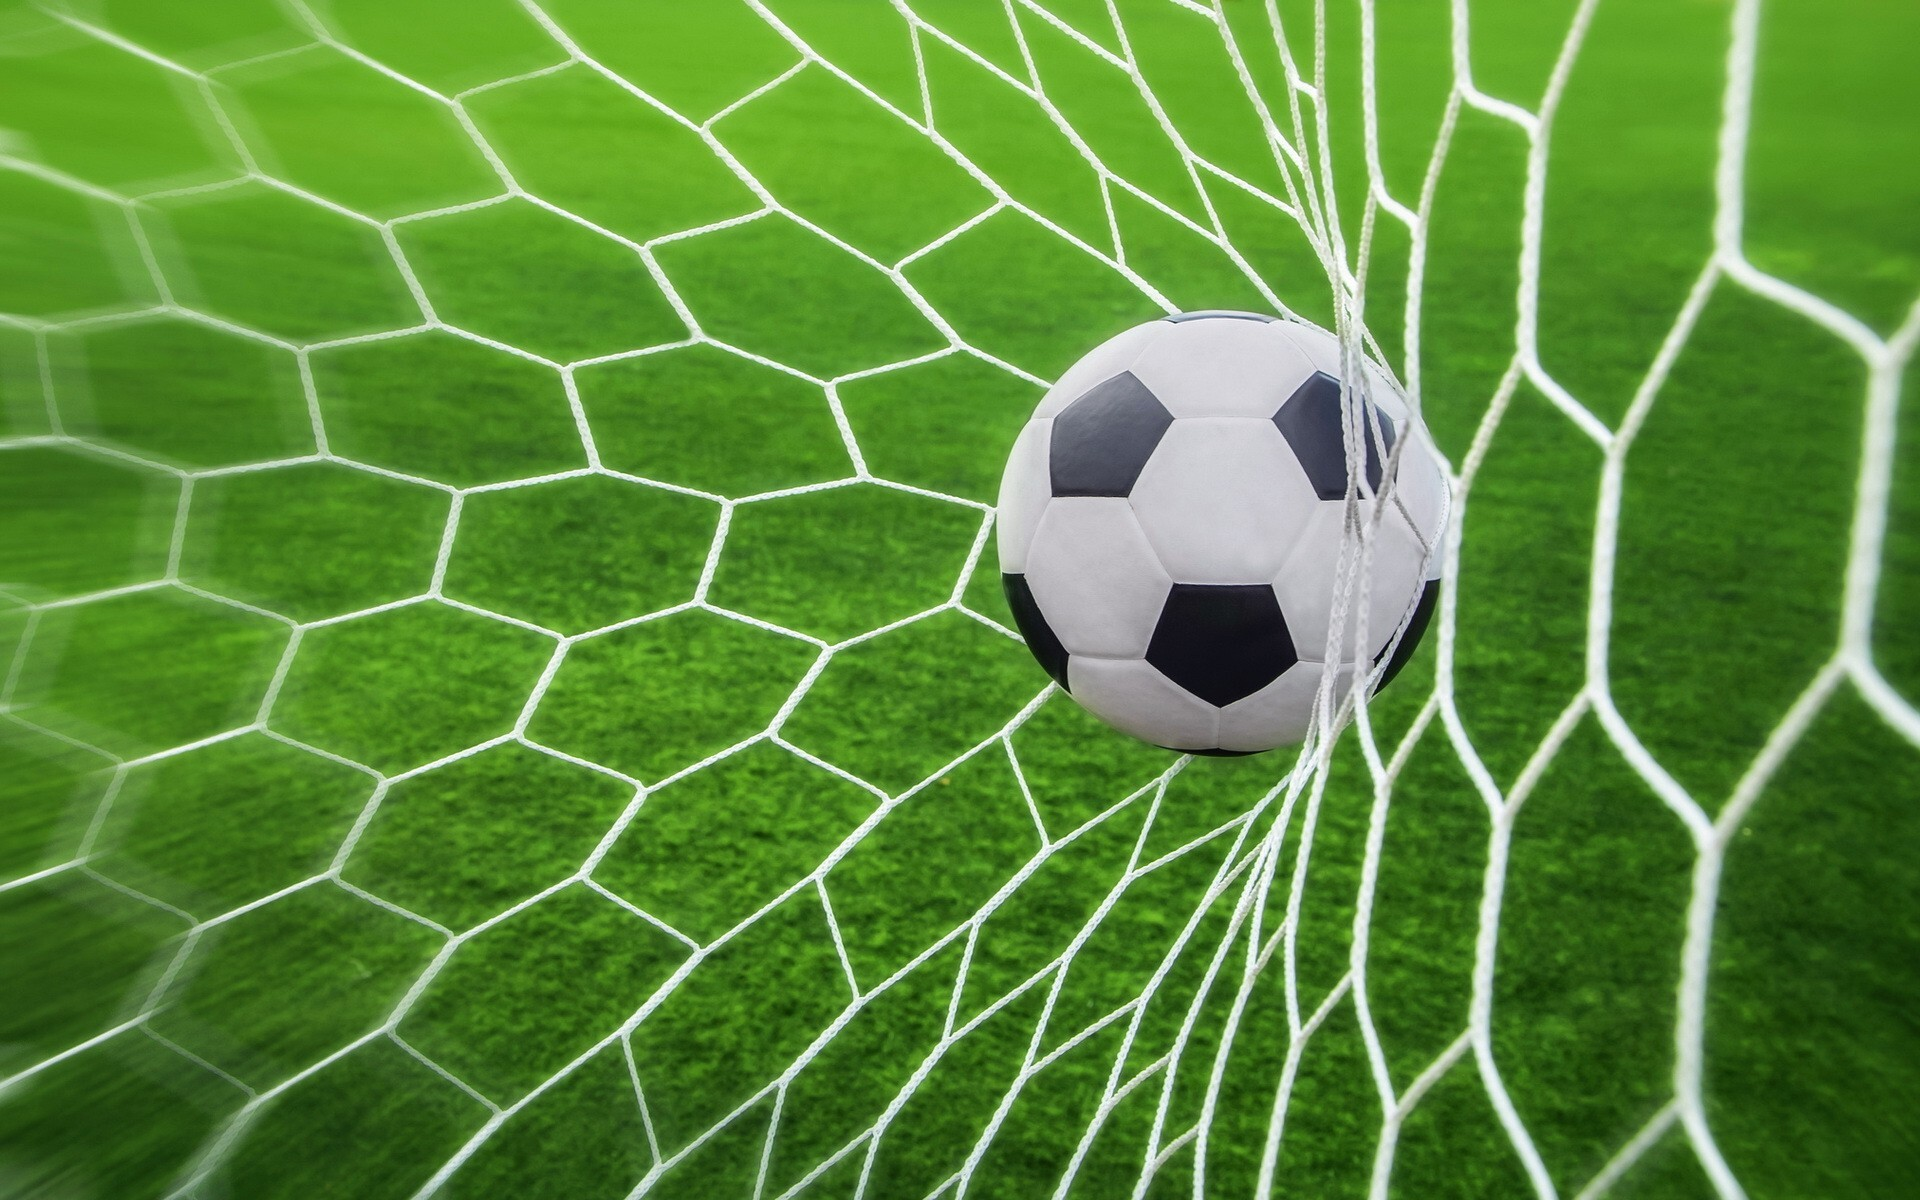 1920x1200 Football Goal 1080p Resolution Hd 4k Wallpapers Images